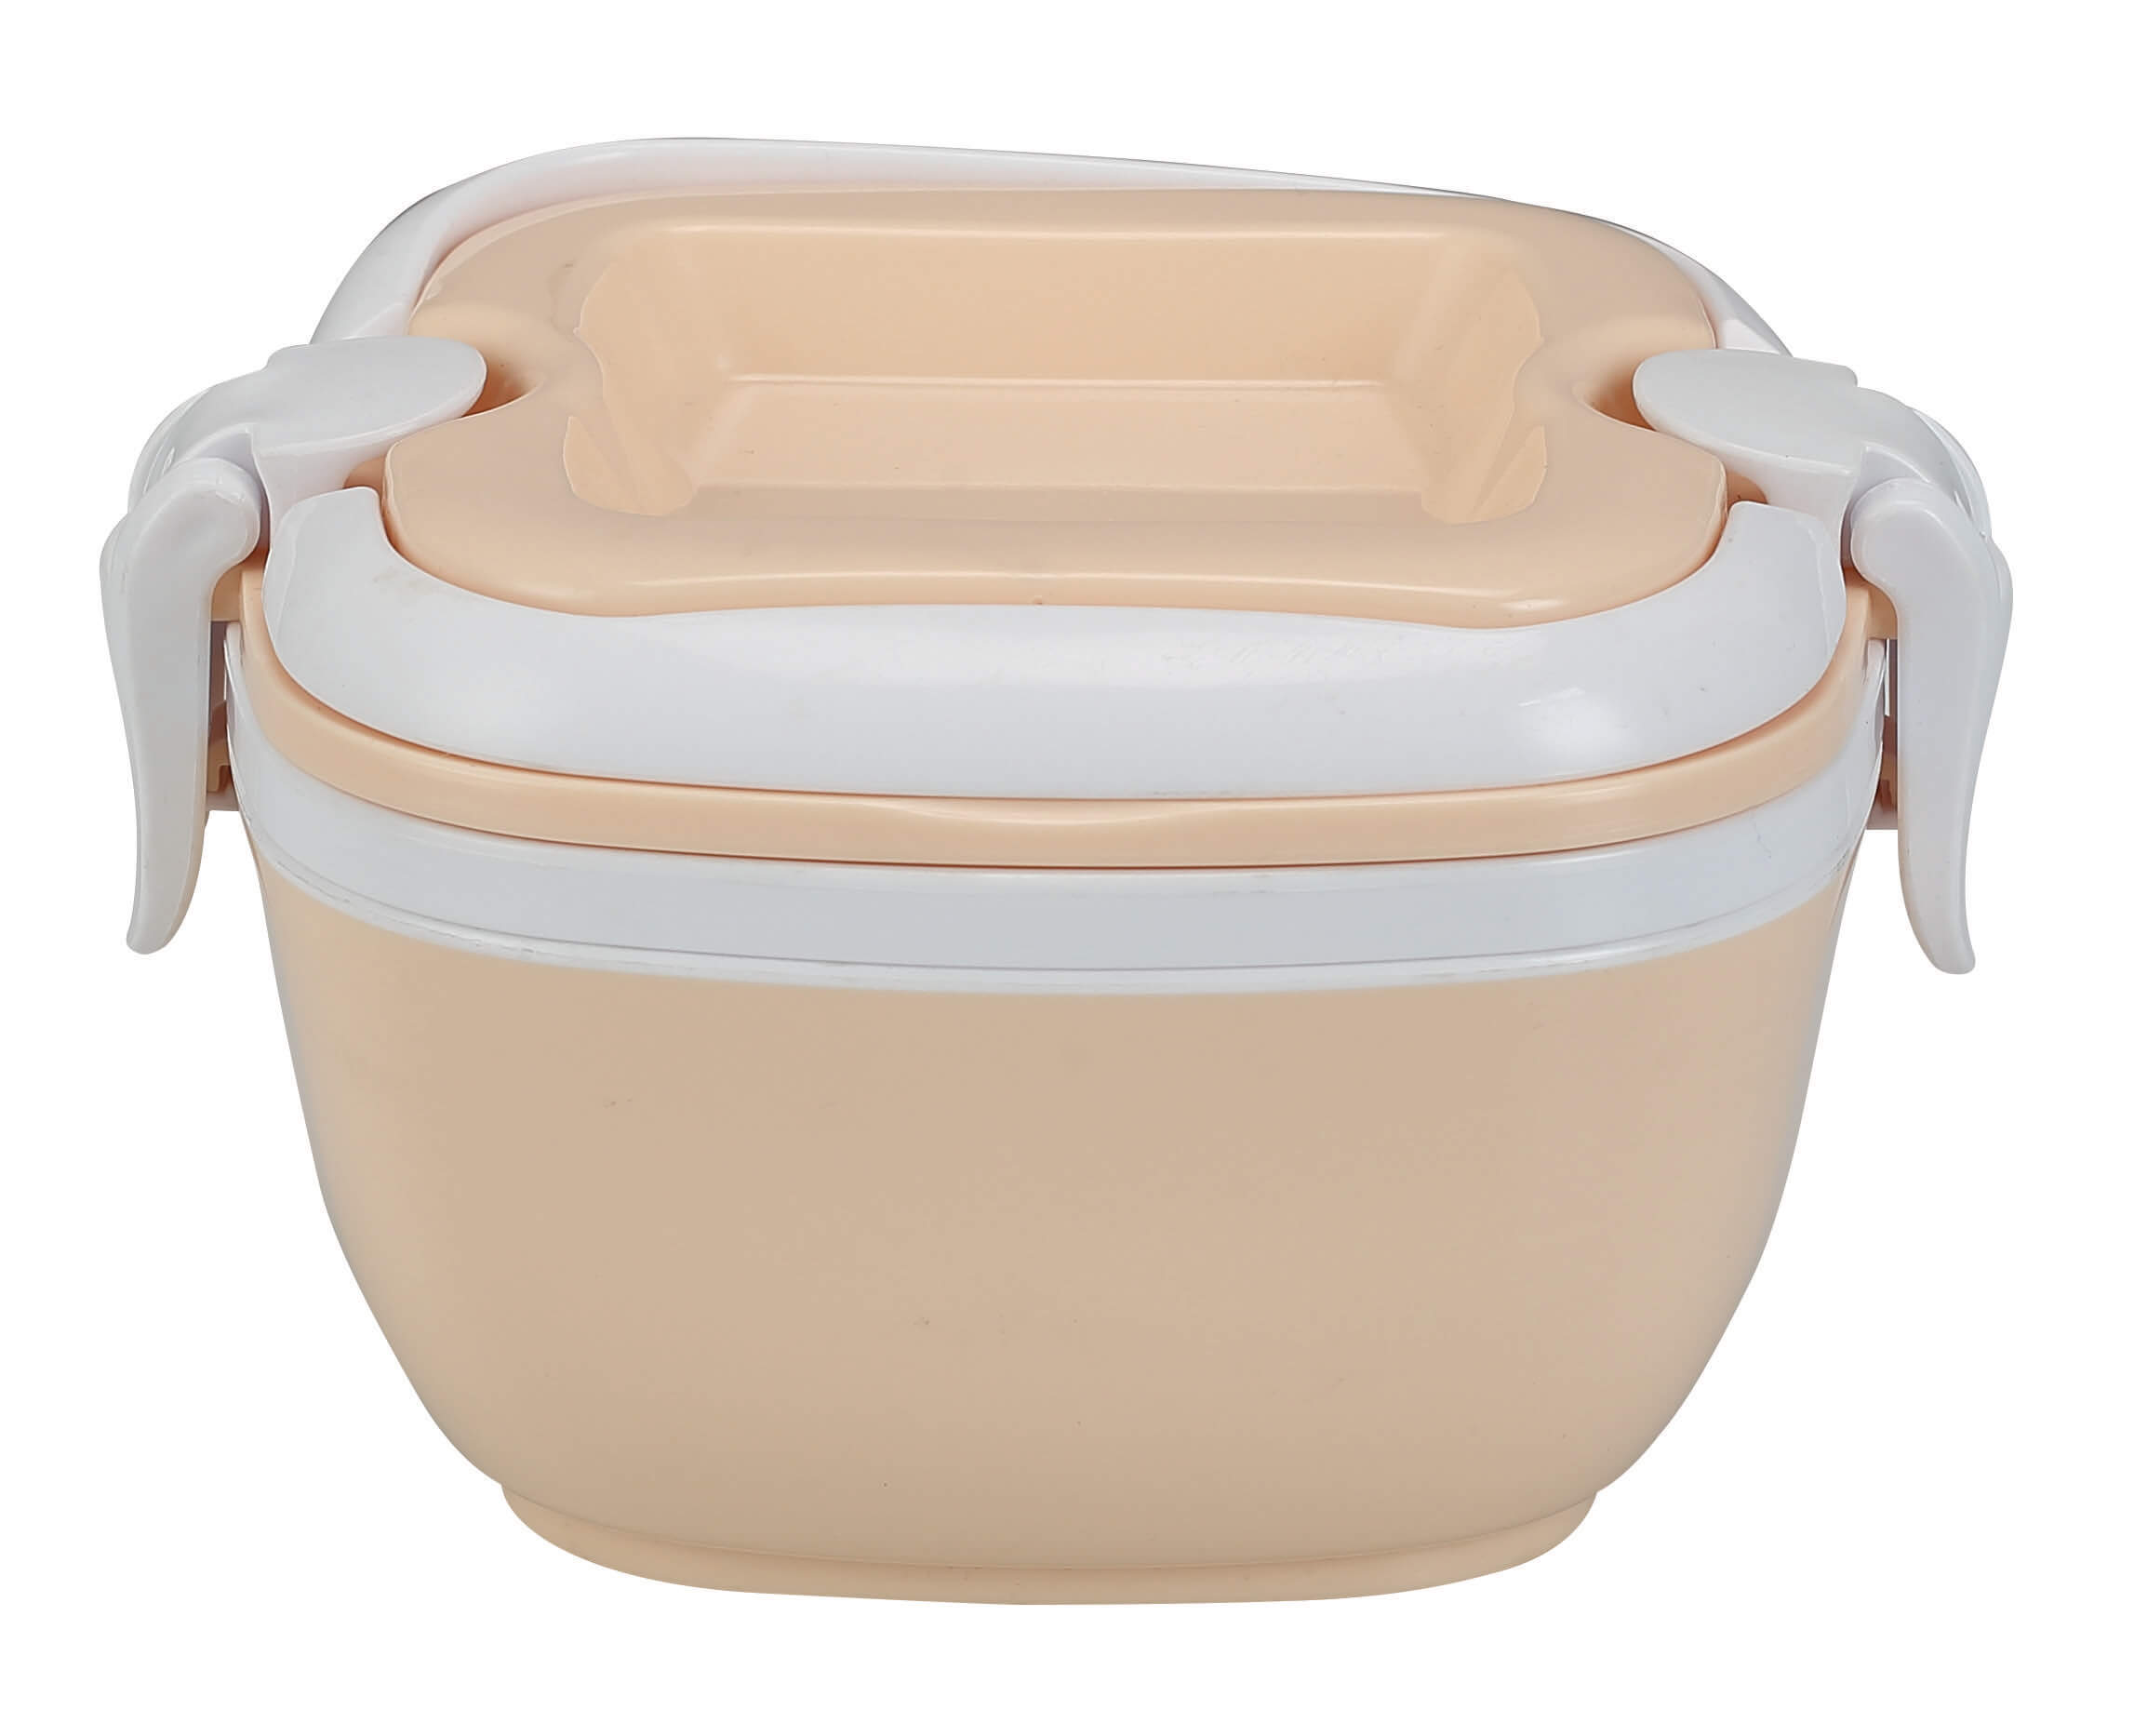 Sysco Tiffin Box-SQ One Bati-Cream